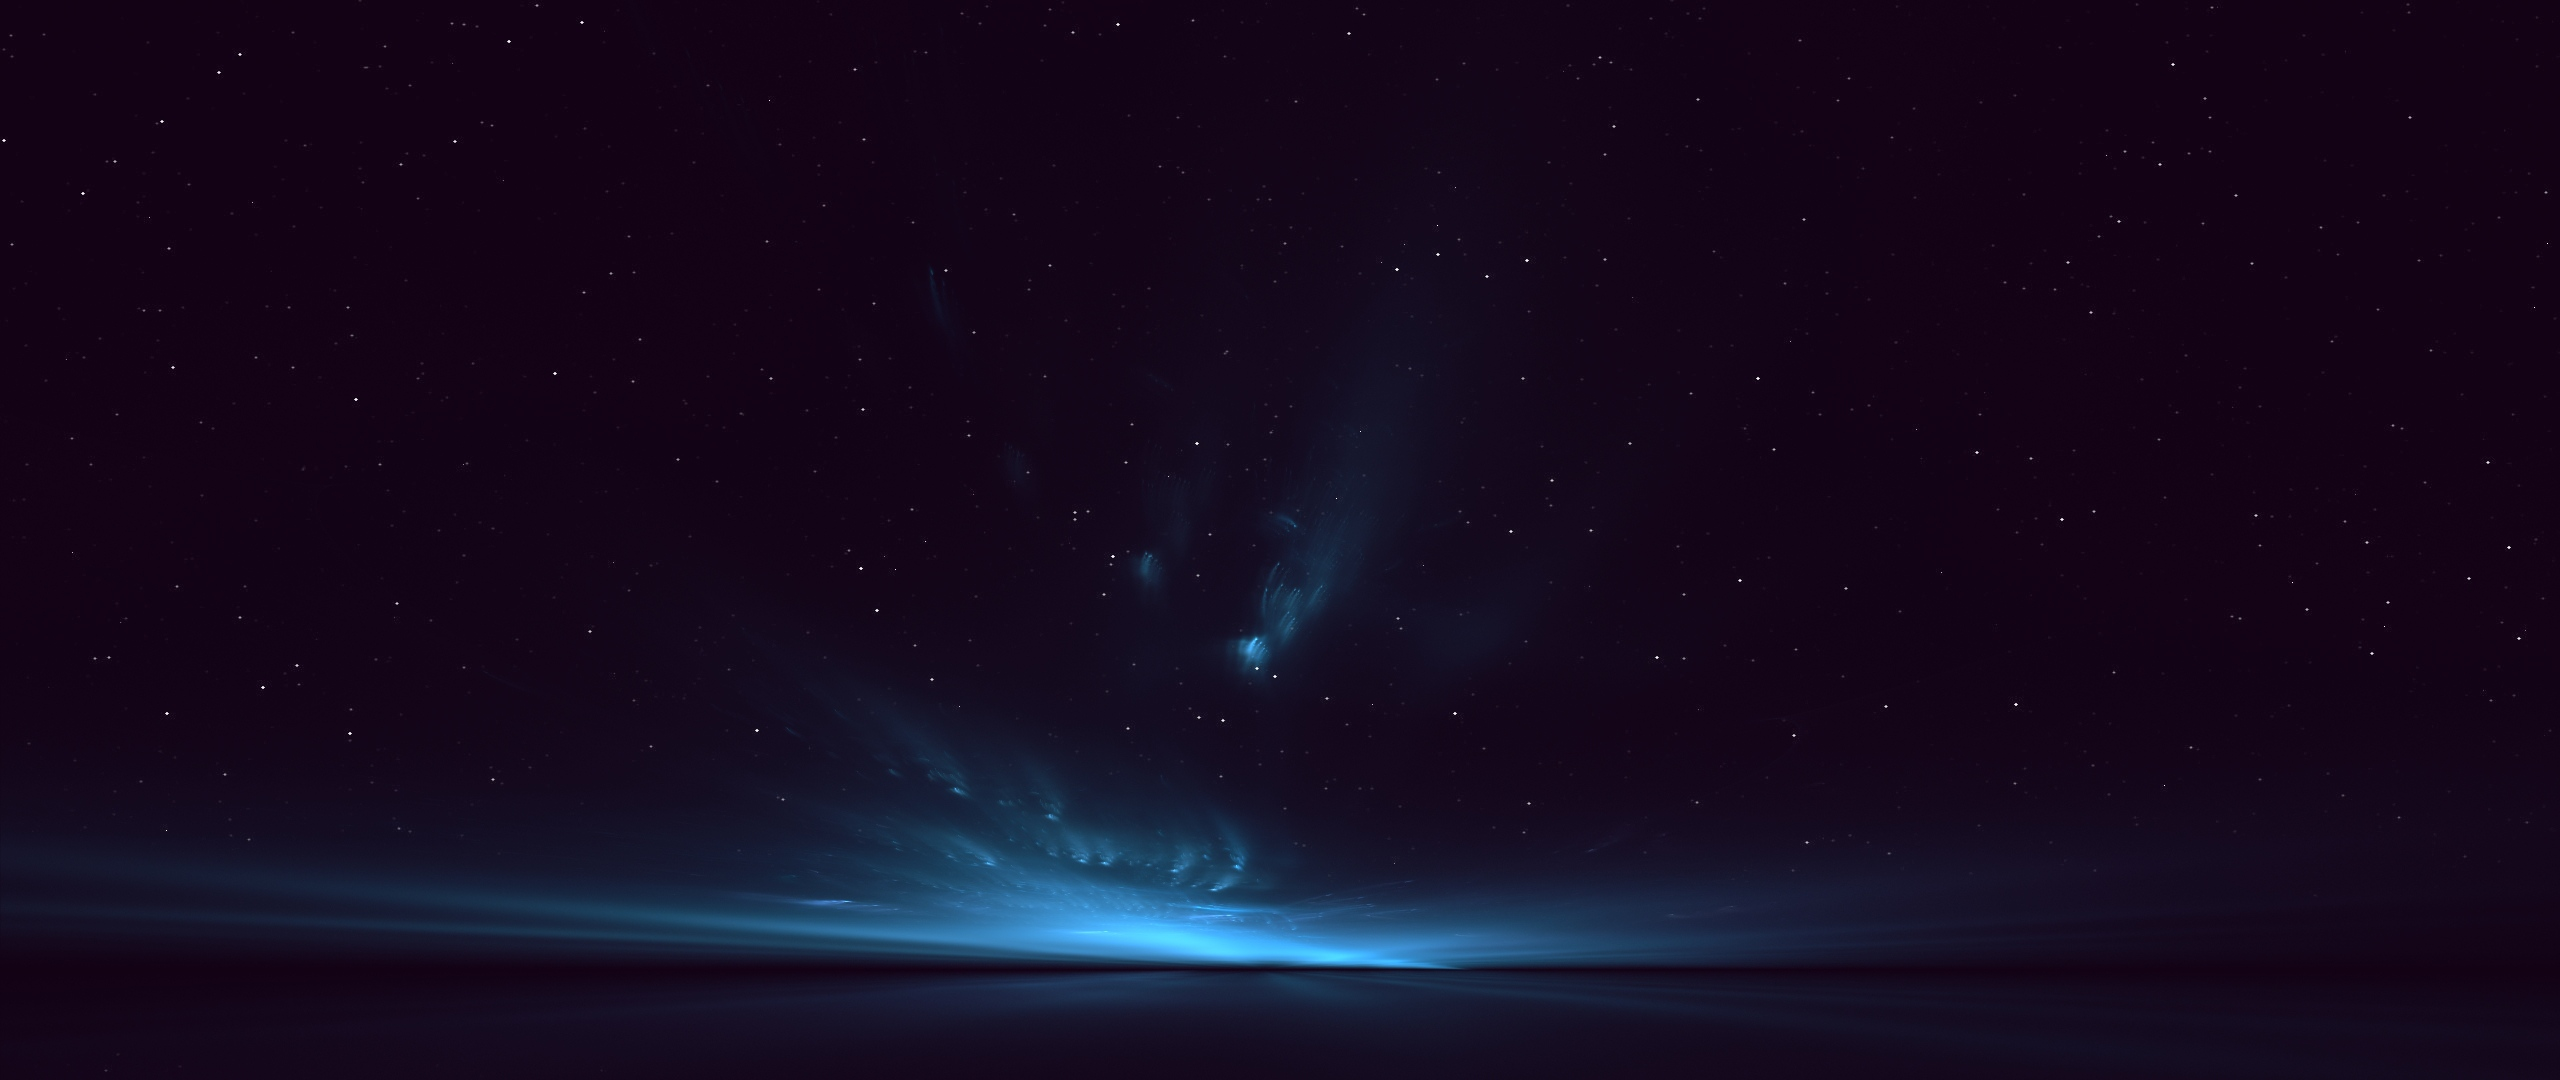 Hd wallpaper ultra wide - Hd Background Blue Aurora Light Space Stars Wallpaper Wallpapersbyte